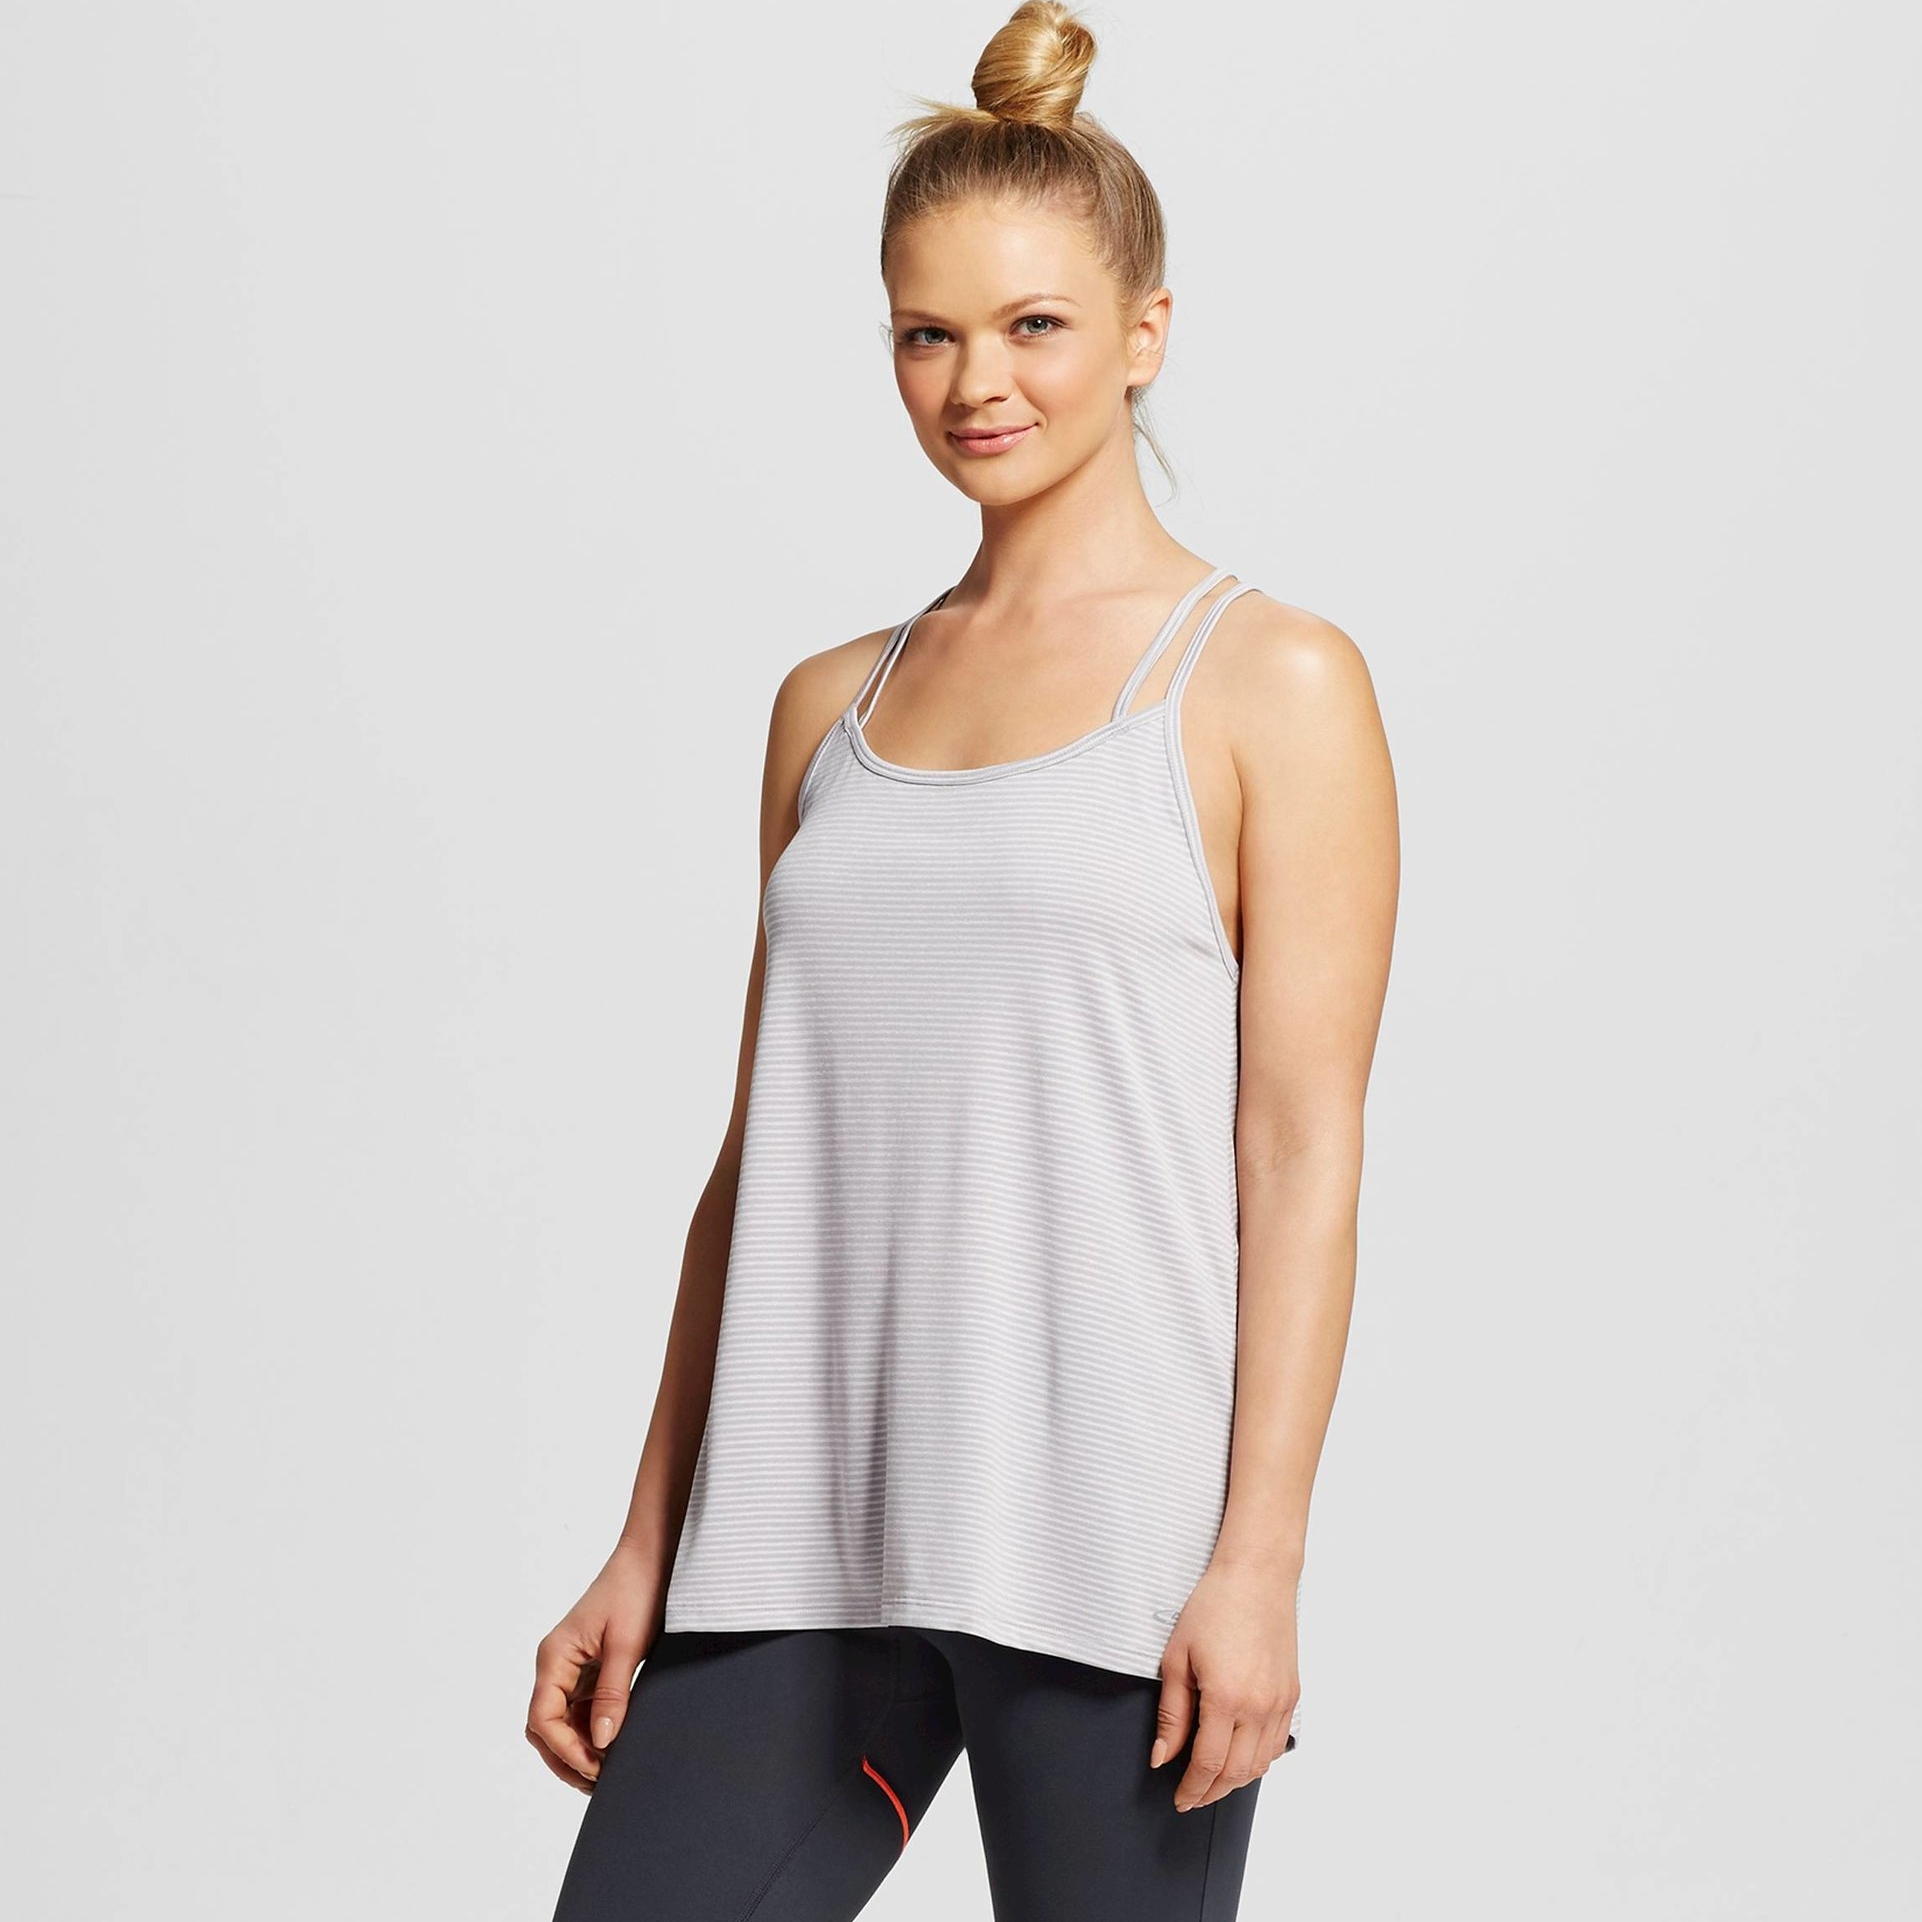 Champion Performance Cami from Target